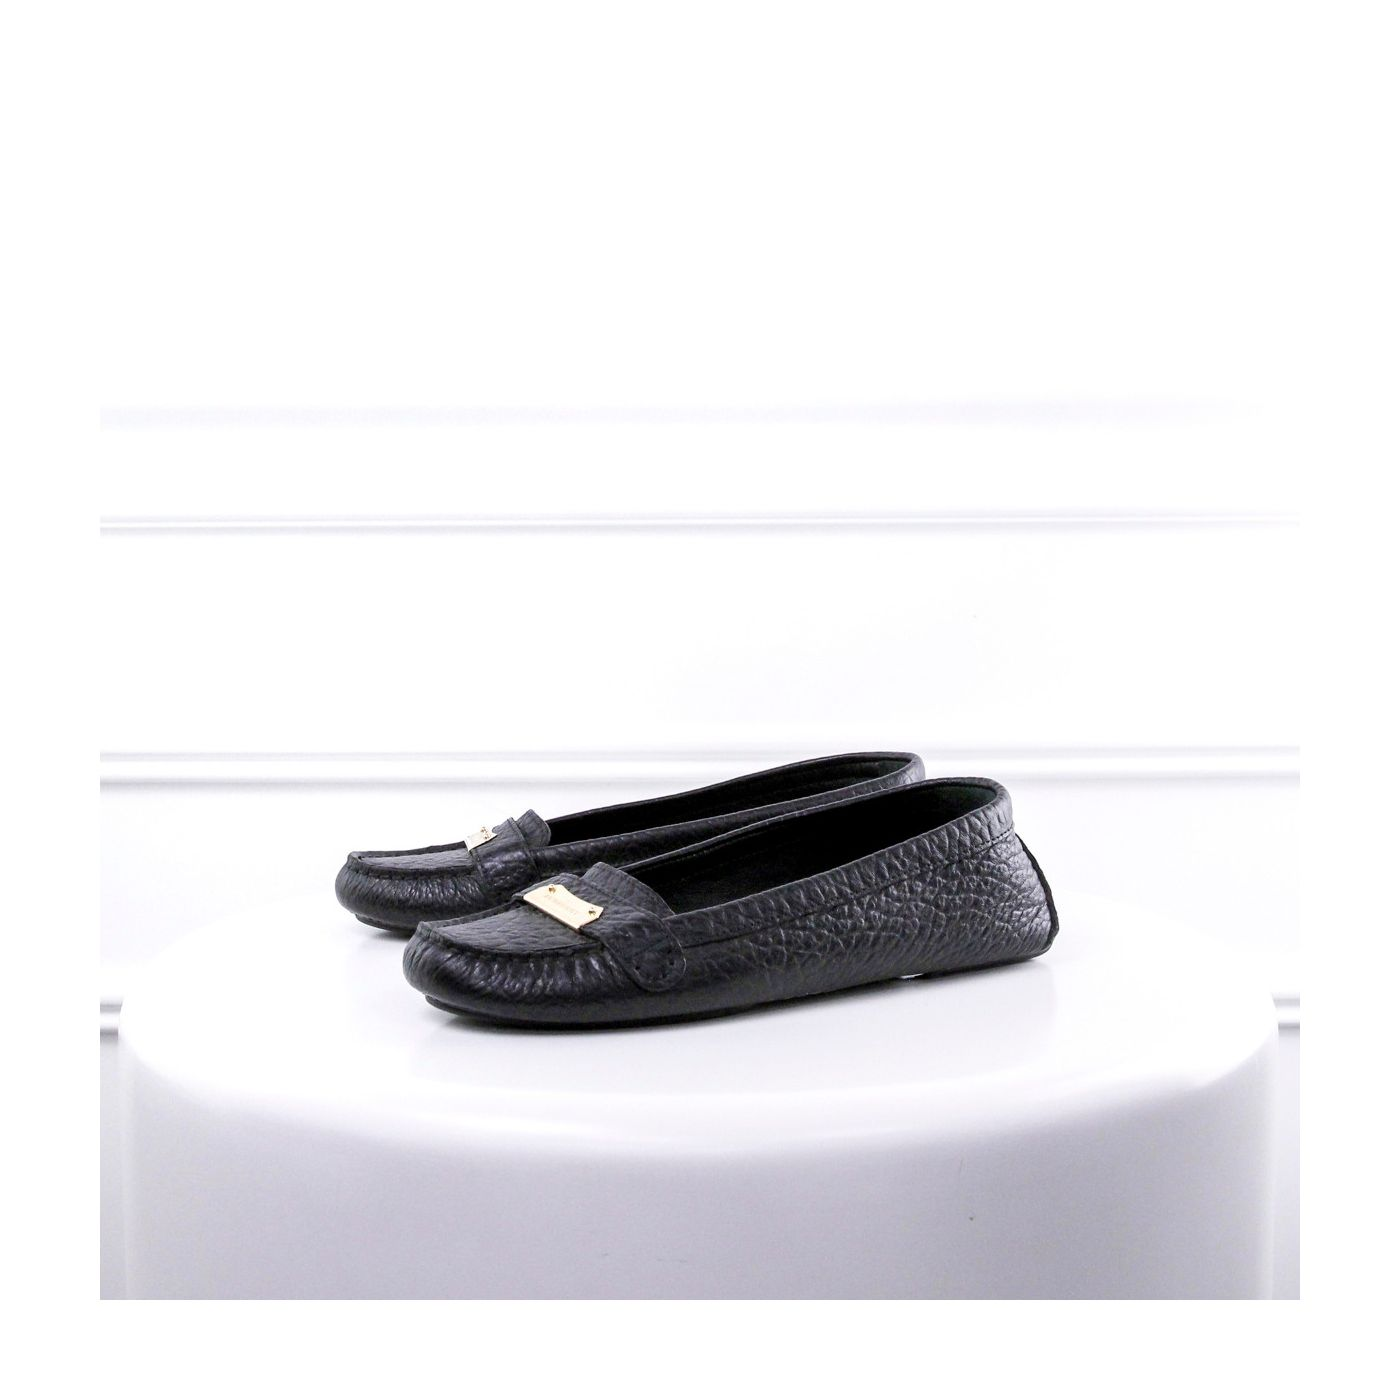 Burberry Black Loafer Ballerina 37